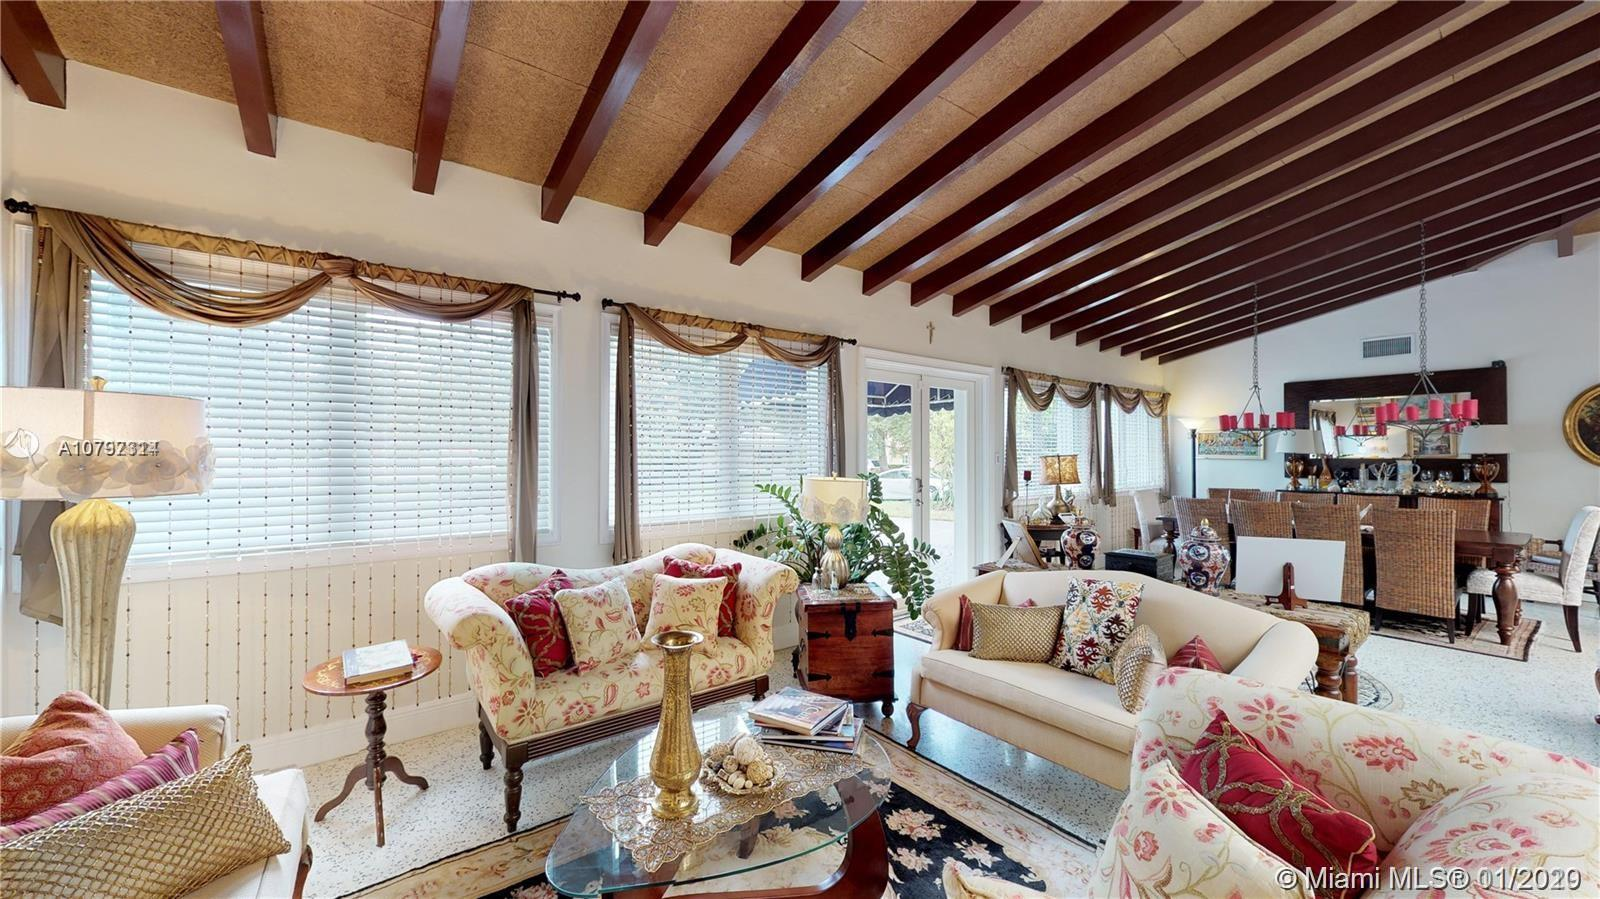 Gorgeous, 3683 sq. ft. house (per appraiser), mid-century modern, designed by famous architect, Tony